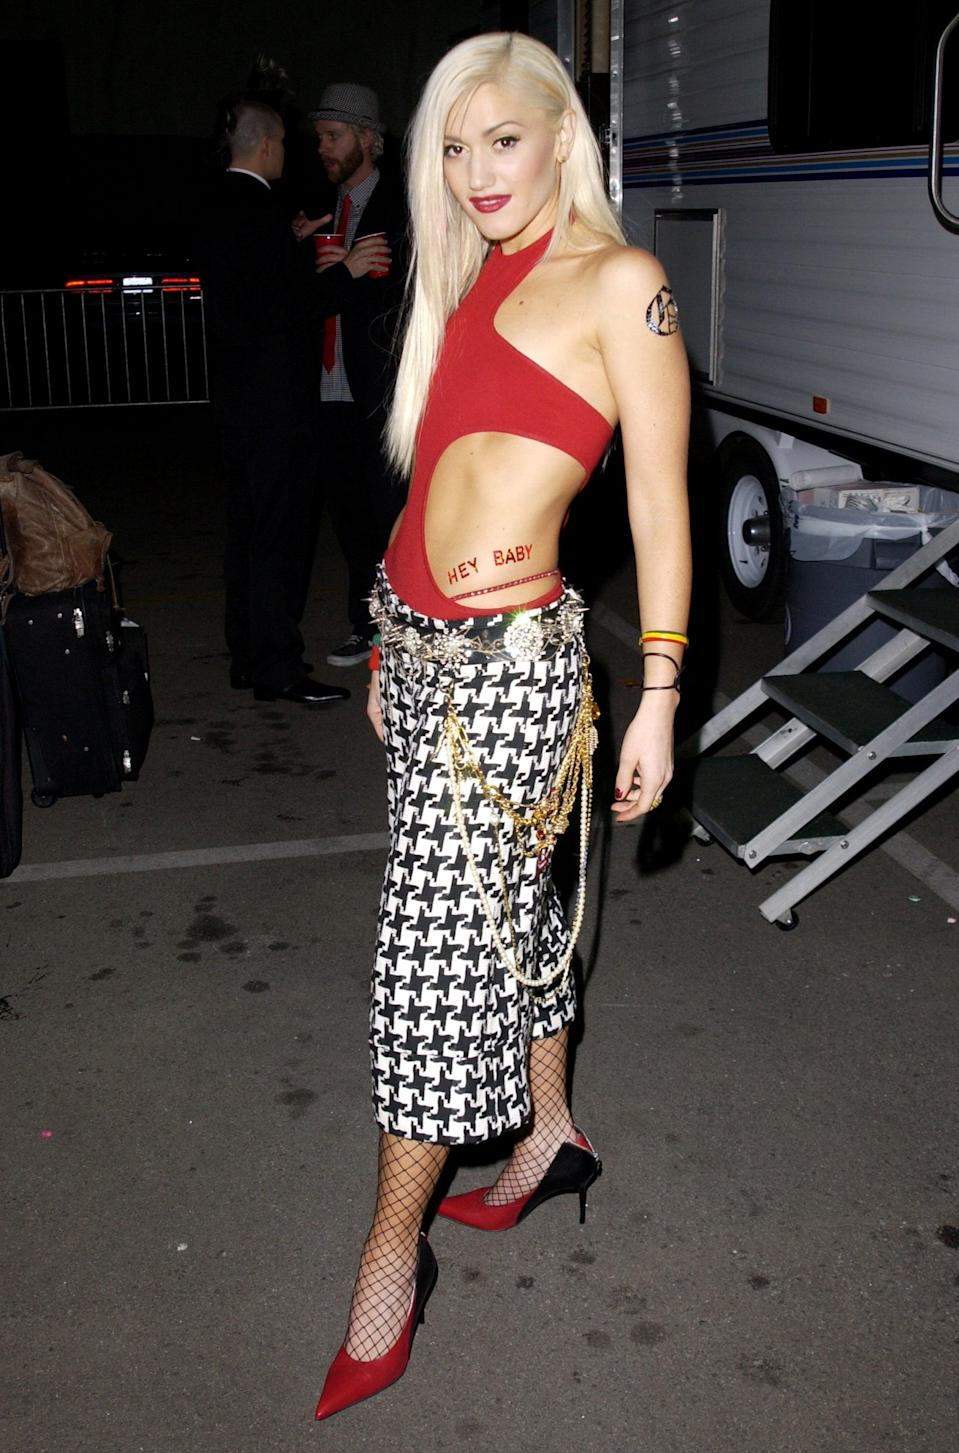 <p>At the 2001 My VH-1 Music Awards wearing a red bodysuit and checkered pants.</p>